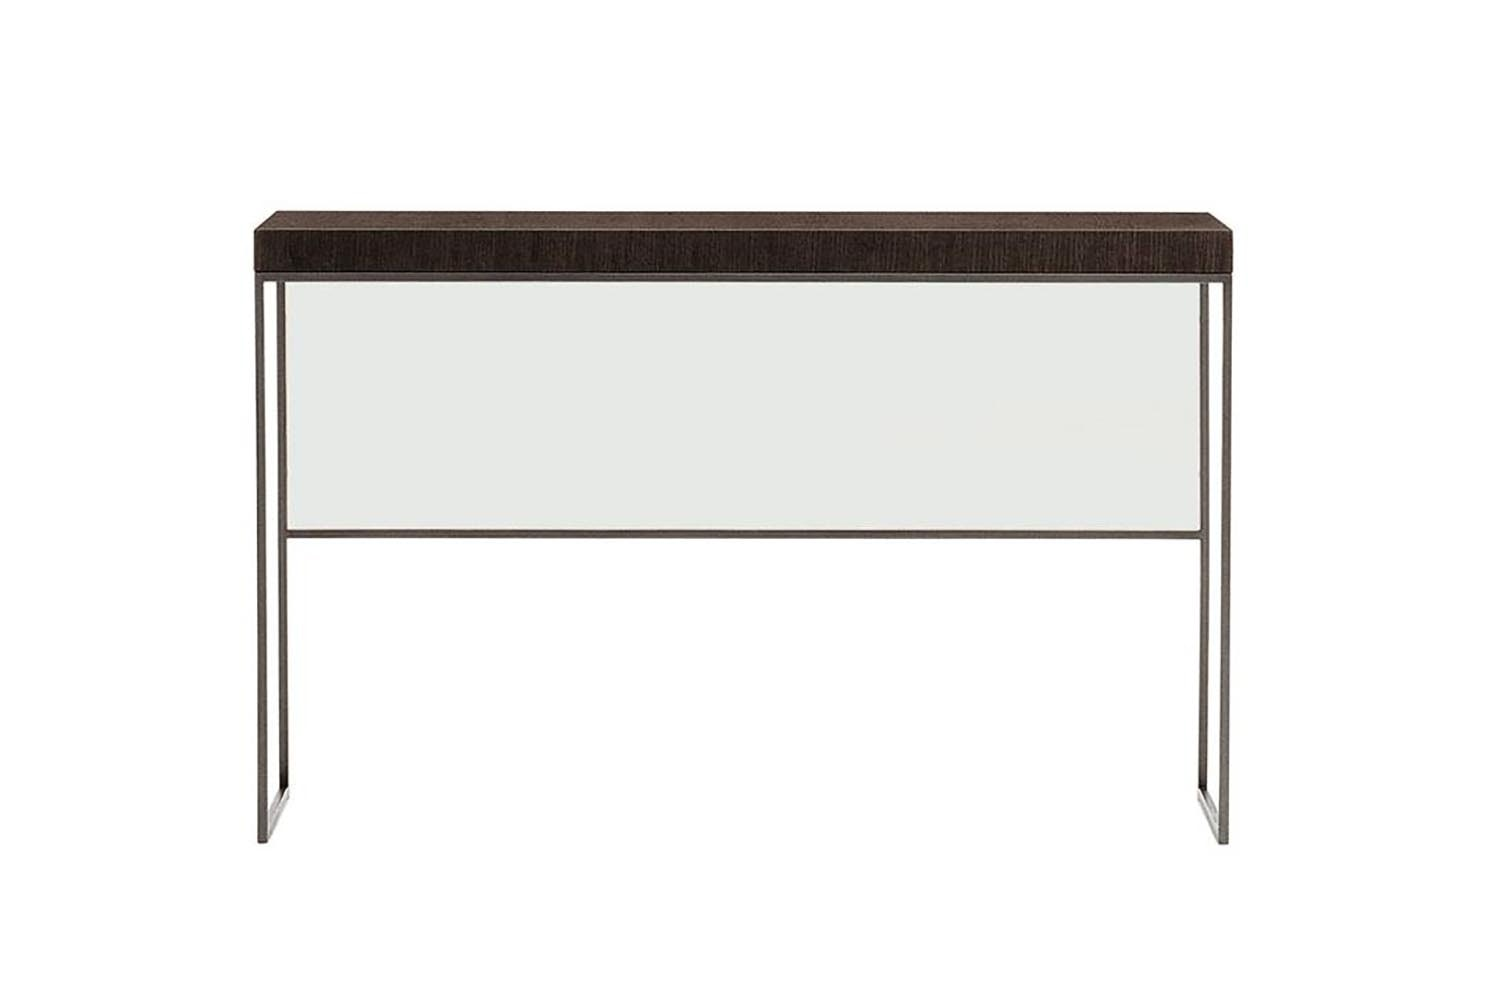 Elios Console by Antonio Citterio for Maxalto